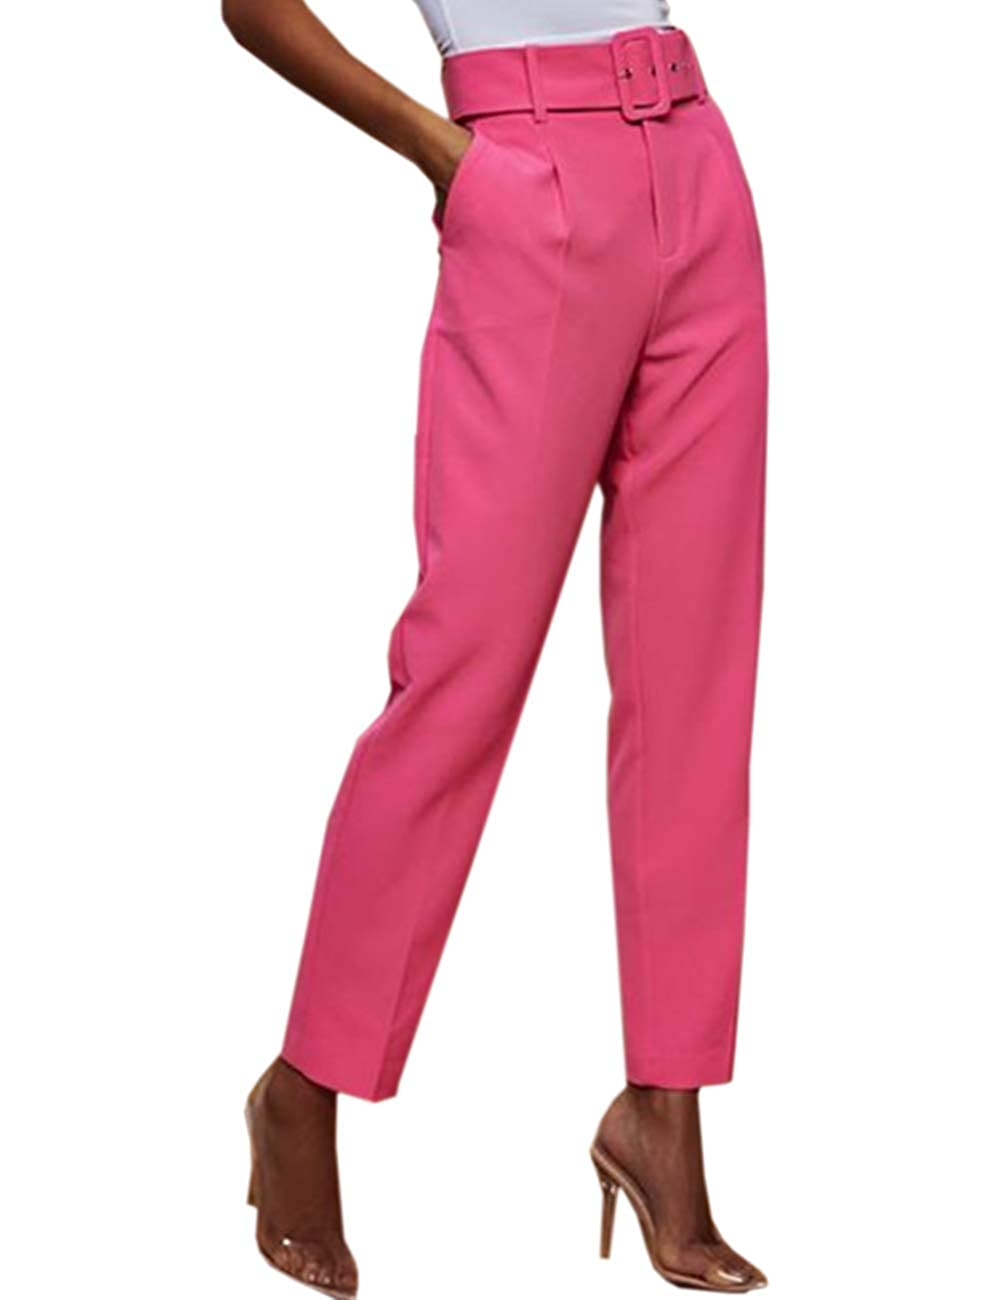 Vintage High Waisted Trousers, Sailor Pants, Jeans SOMTHRON Womens High Rise Belted Slim Fit Cigarette Pants High Waist Long Straight Tapered Leggings Pants with Belt $21.99 AT vintagedancer.com